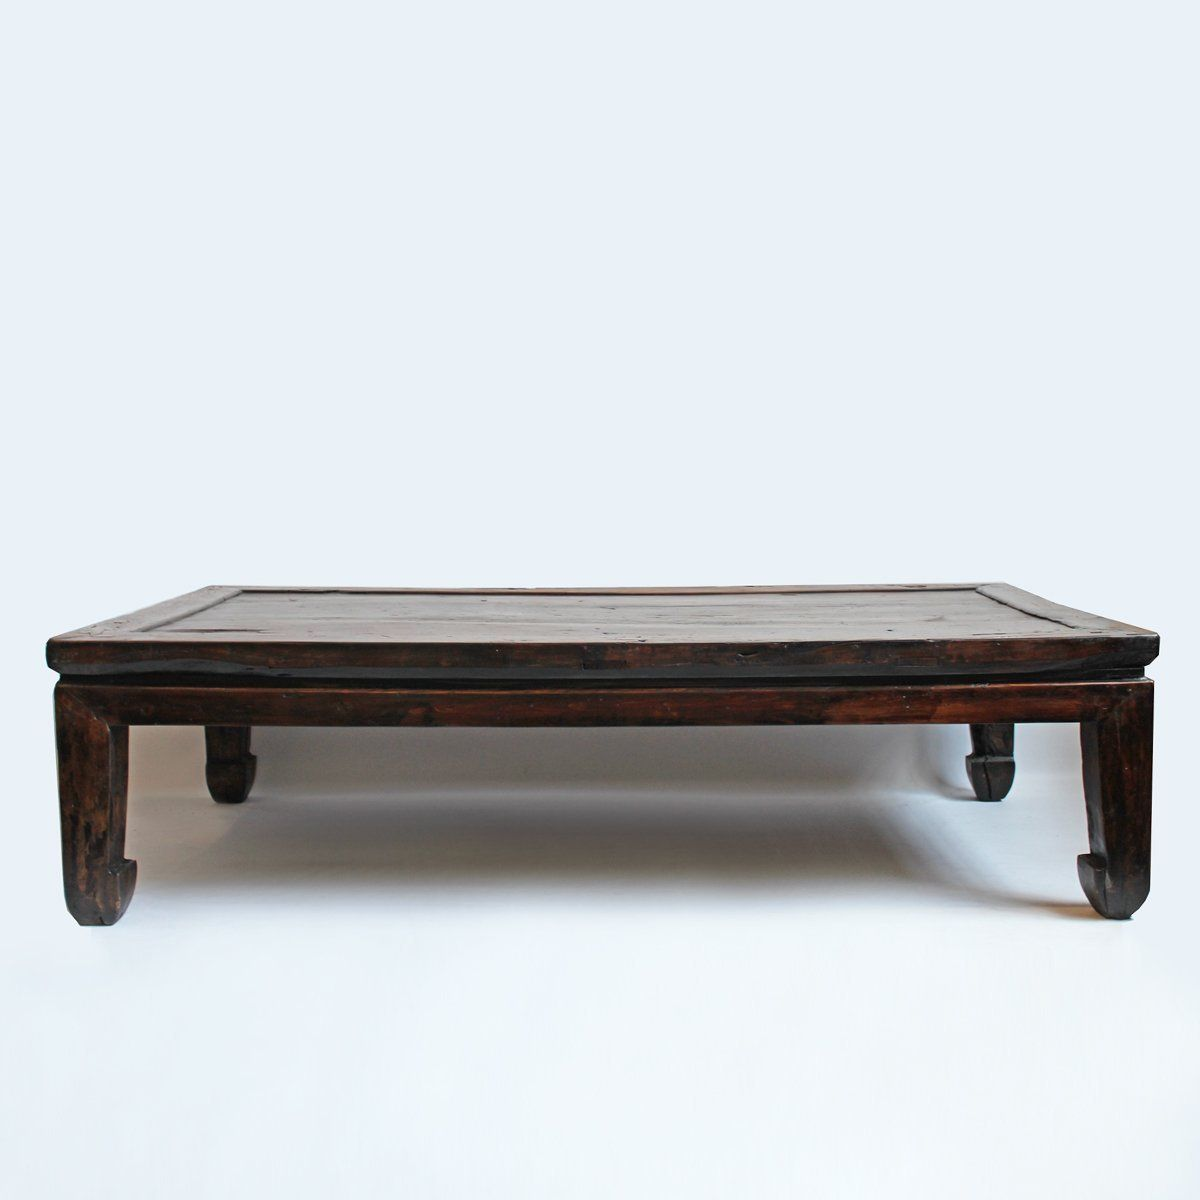 Original solid elm wood monk bed coffee table with dark espresso stain sealed in lacquer finish.